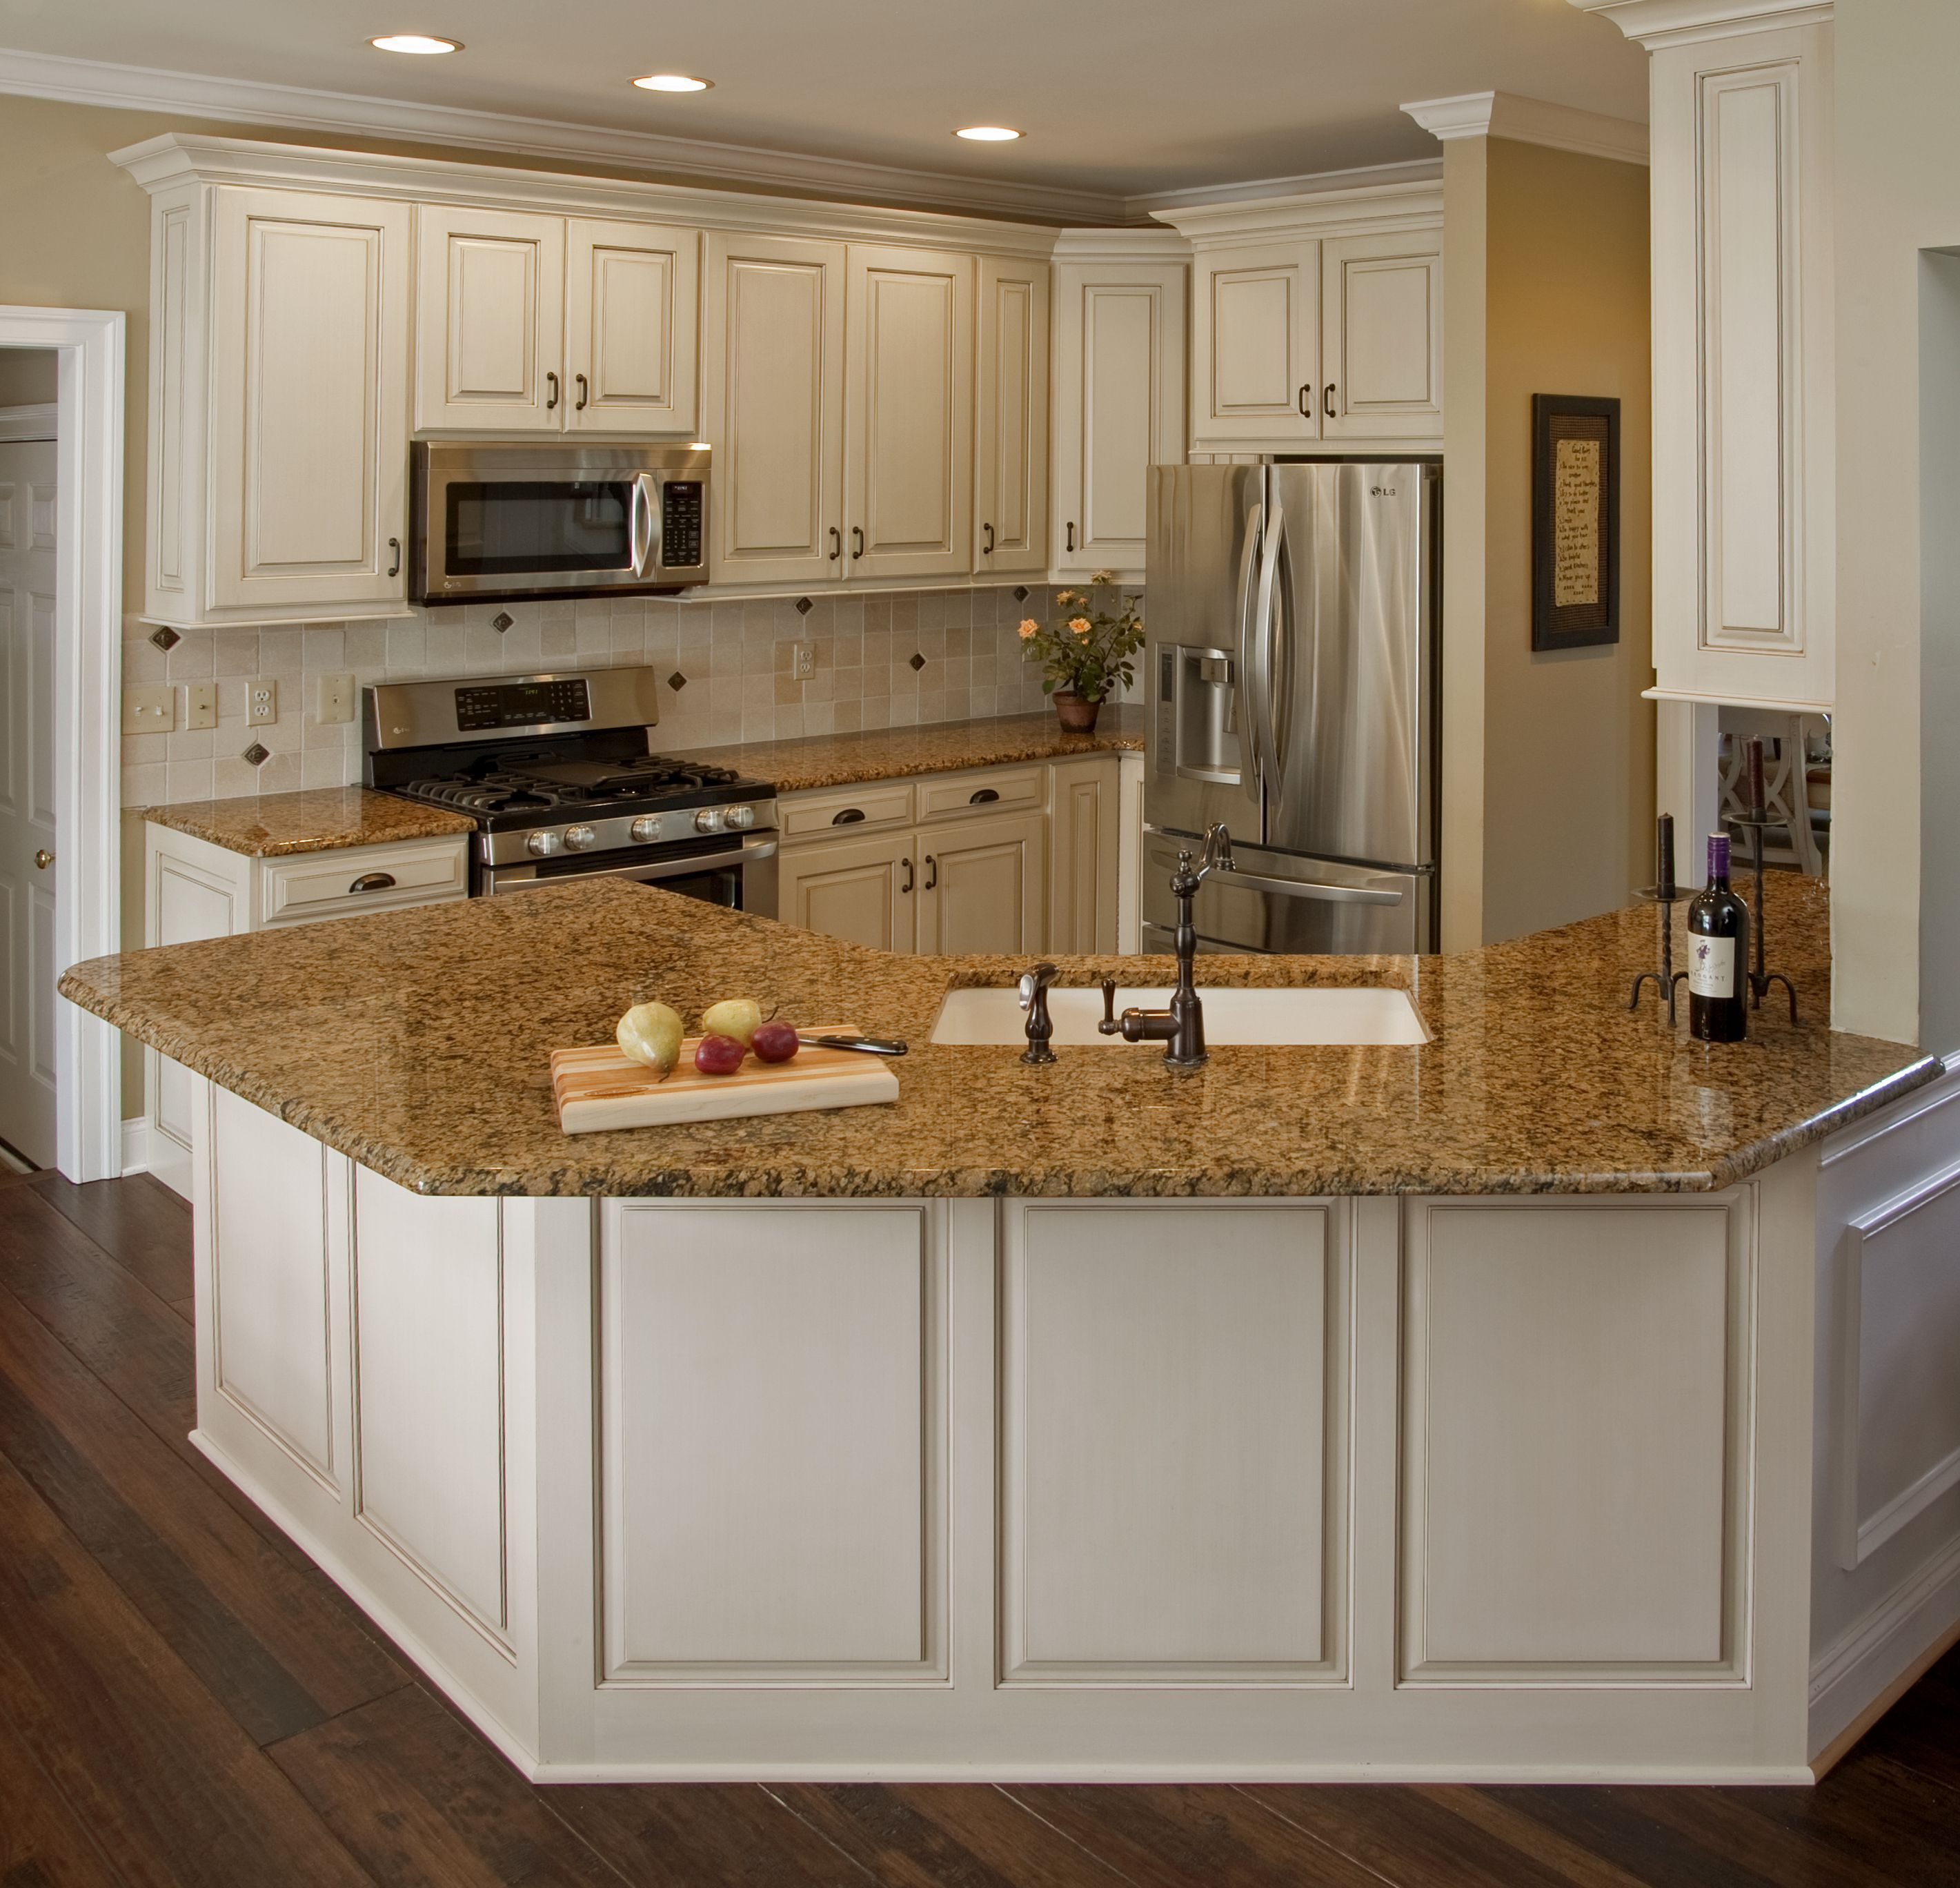 Inspiring Kitchen Decor Using Cabinet Refacing Cost On